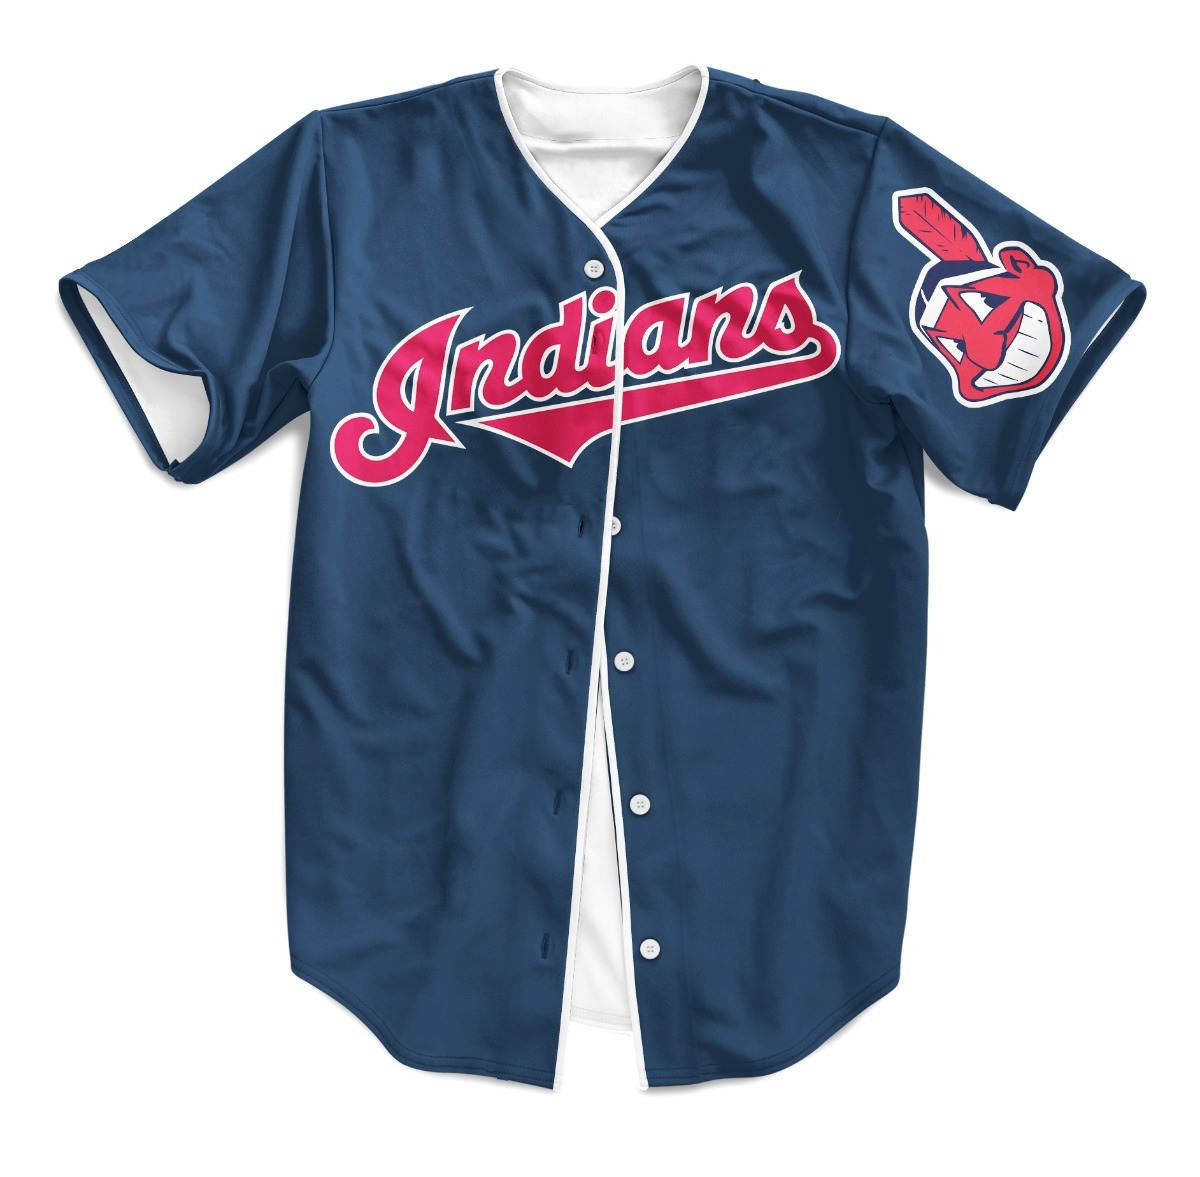 Camisa Jersey Baseball Cleveland Indians Major League - R  179 f2a7b22eb84c5